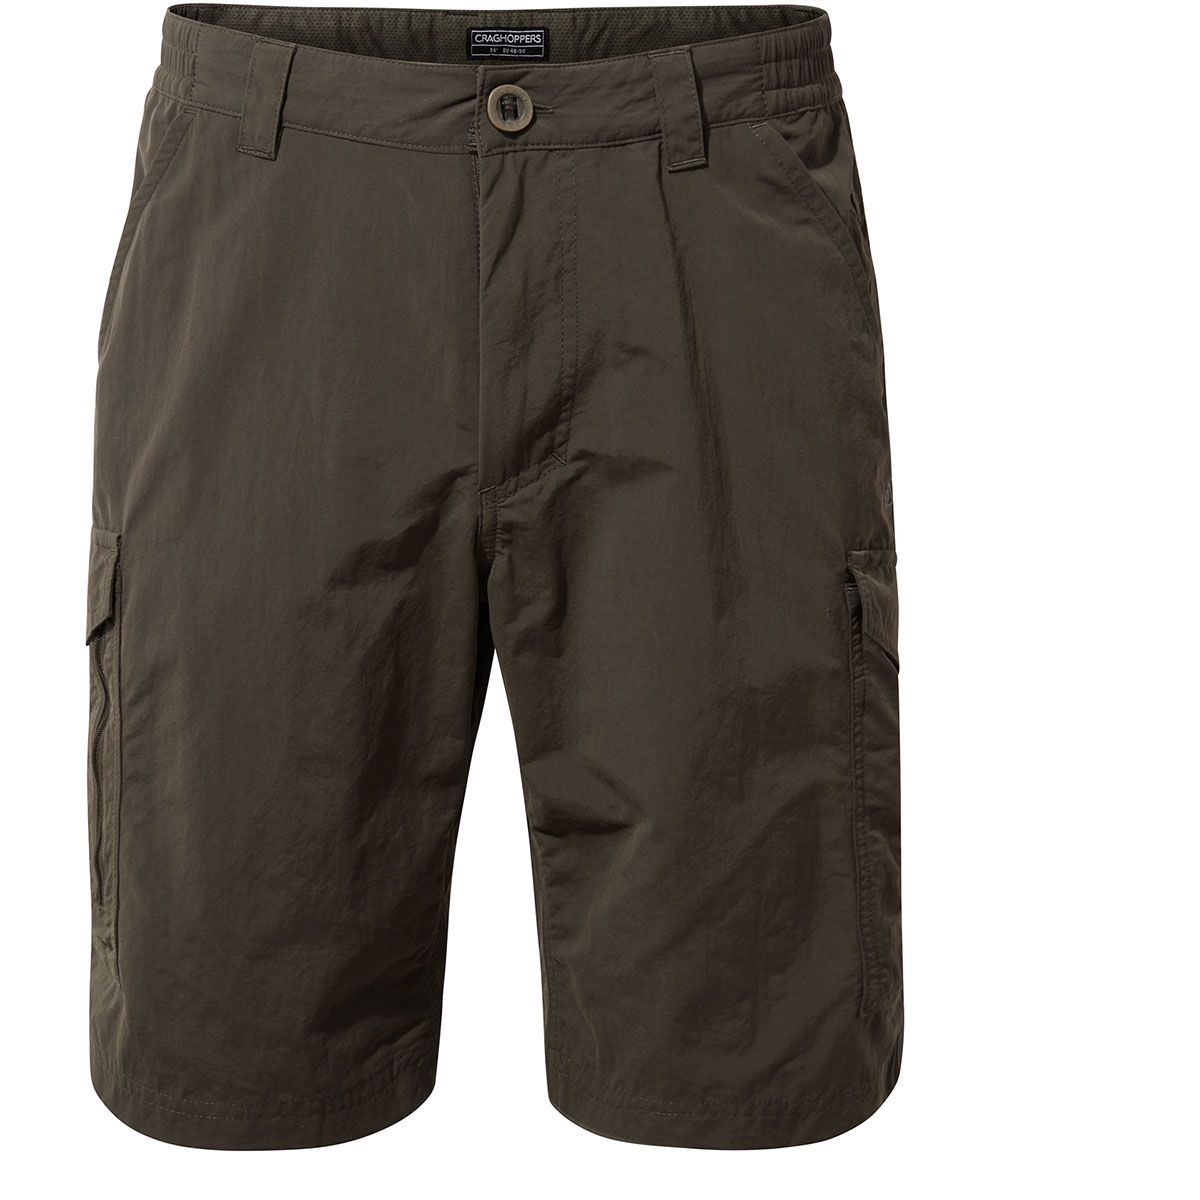 Craghoppers shorts